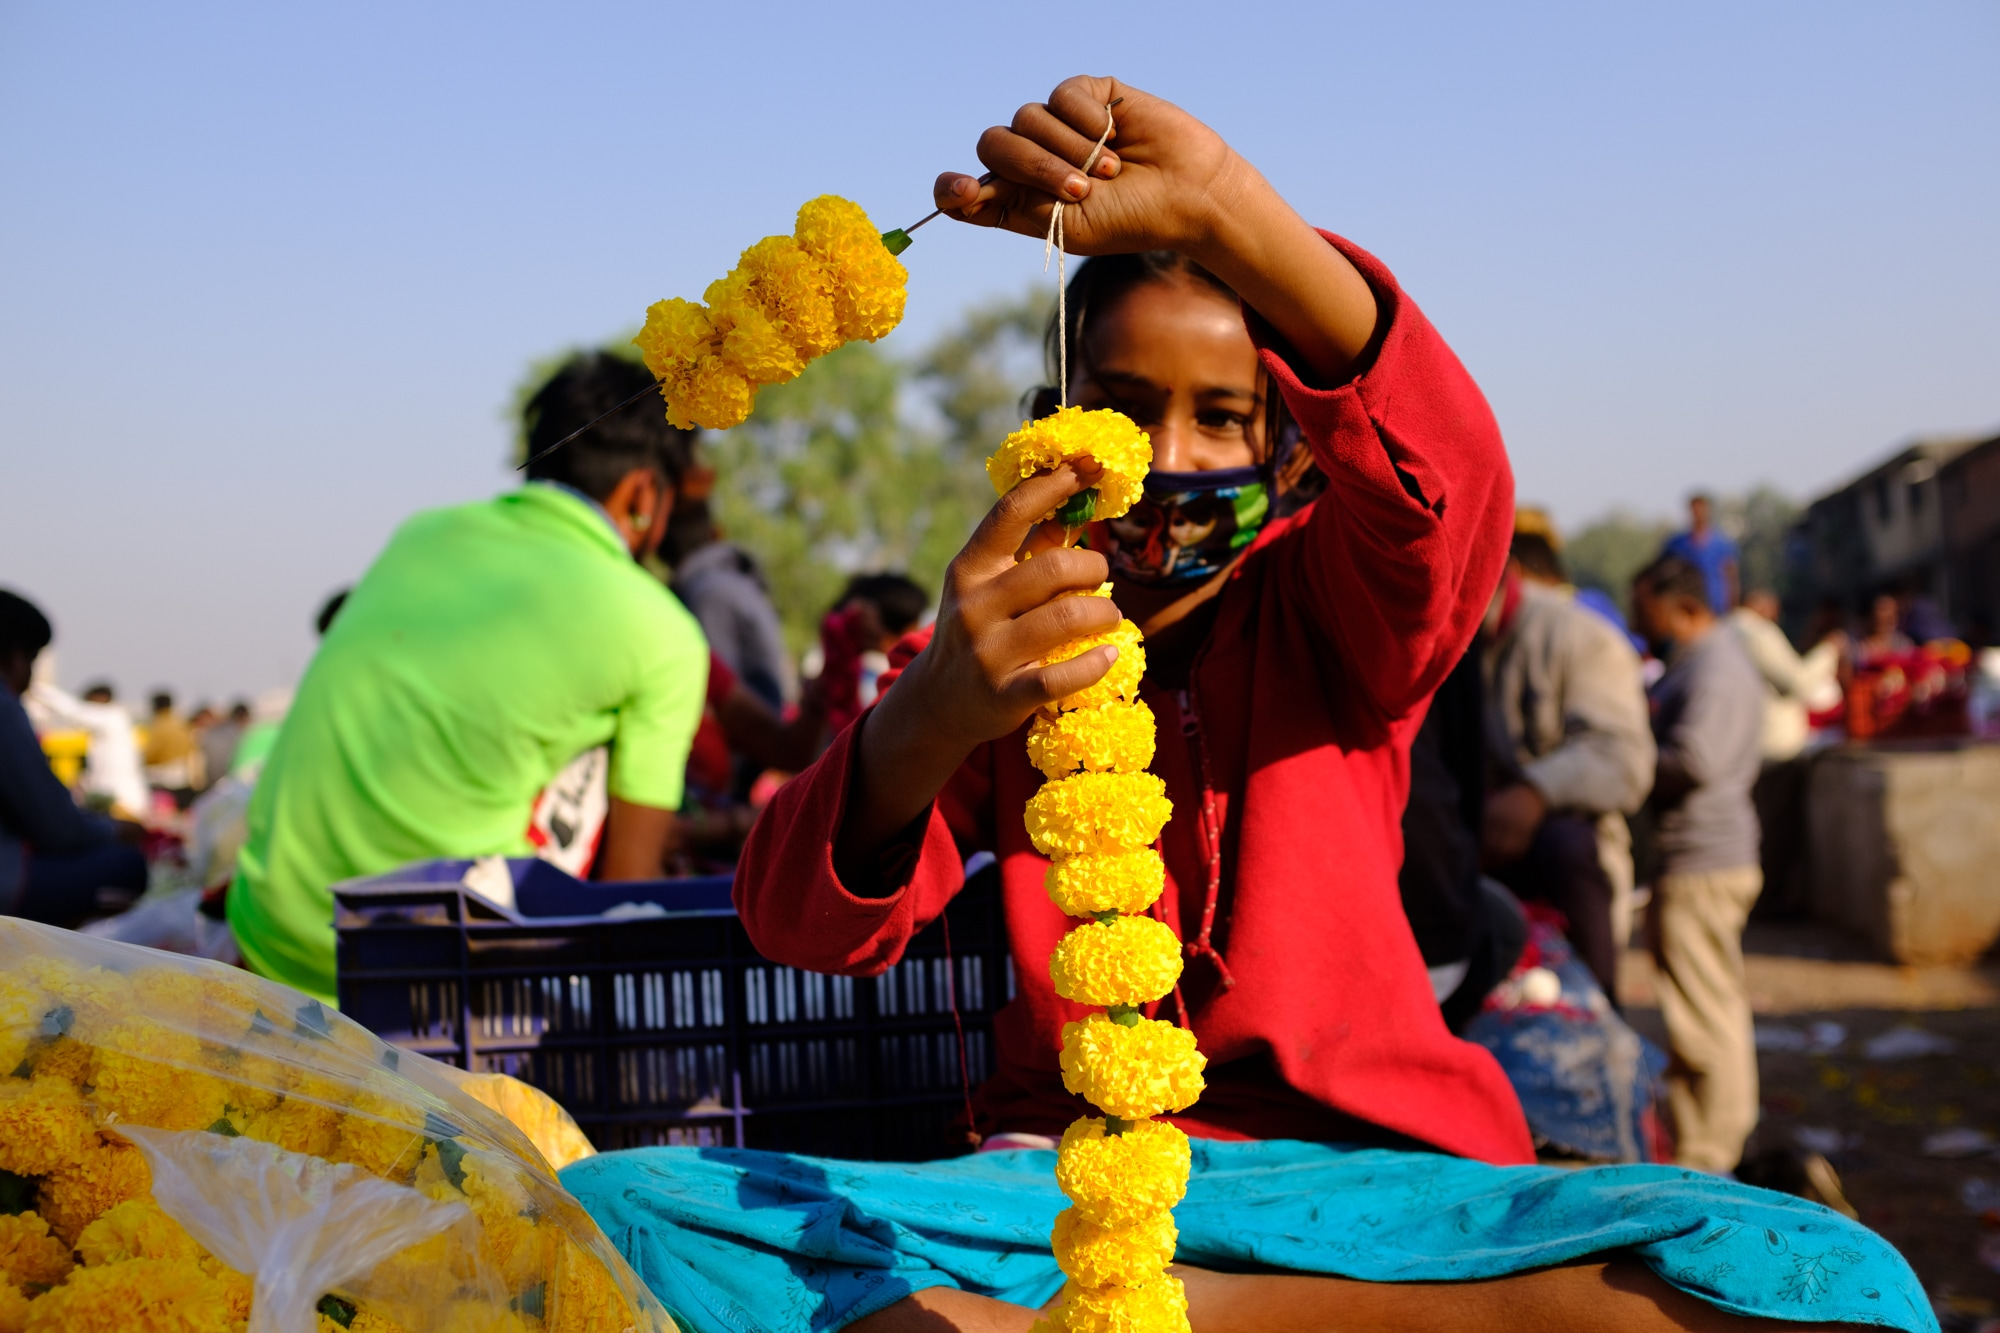 A young girl working at a flower market in Ahmedabad.